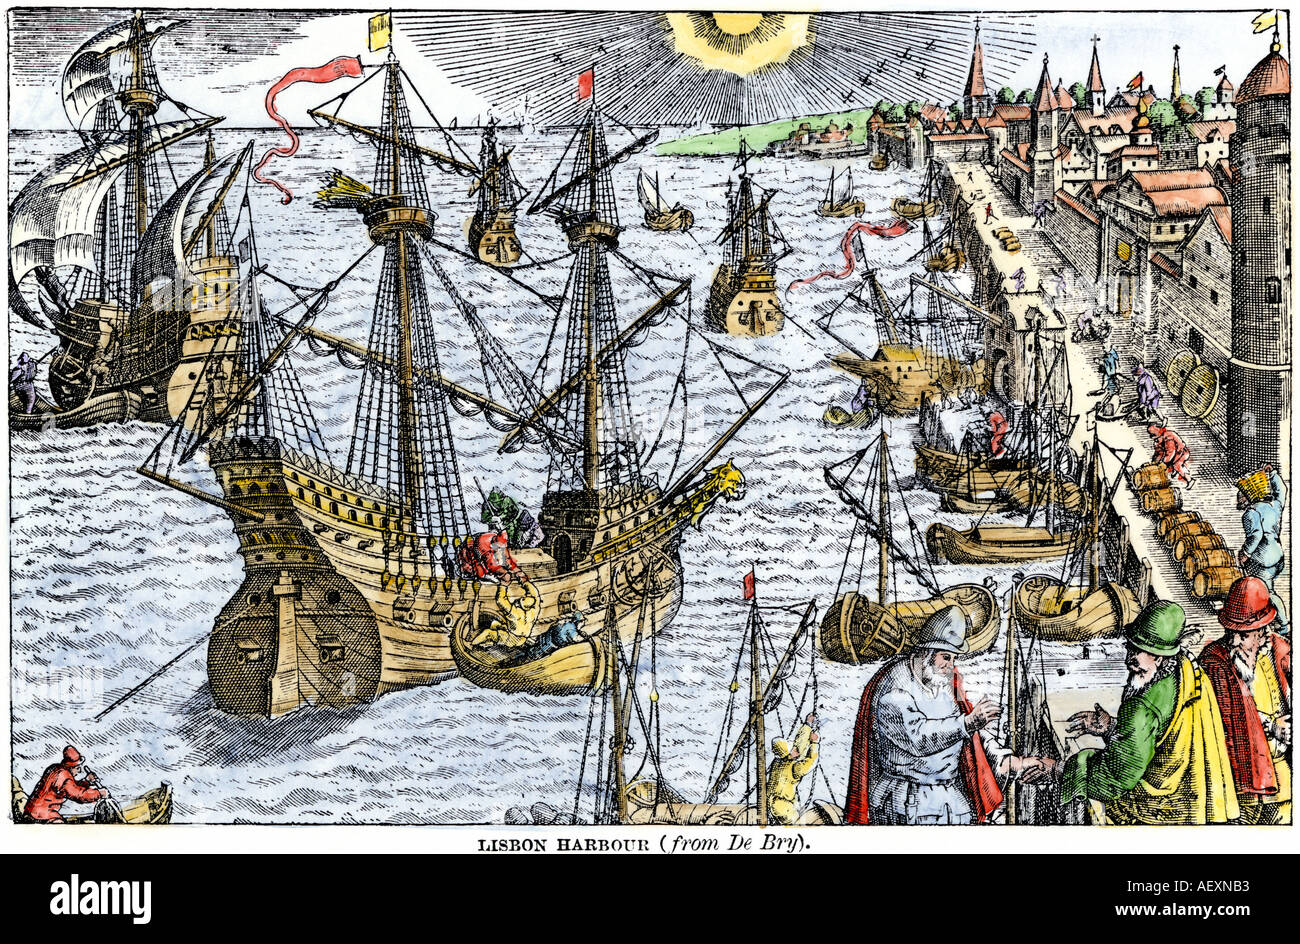 Ships in busy Lisbon harbor circa 1600. Hand-colored woodcut of a Theodore DeBry engraving - Stock Image